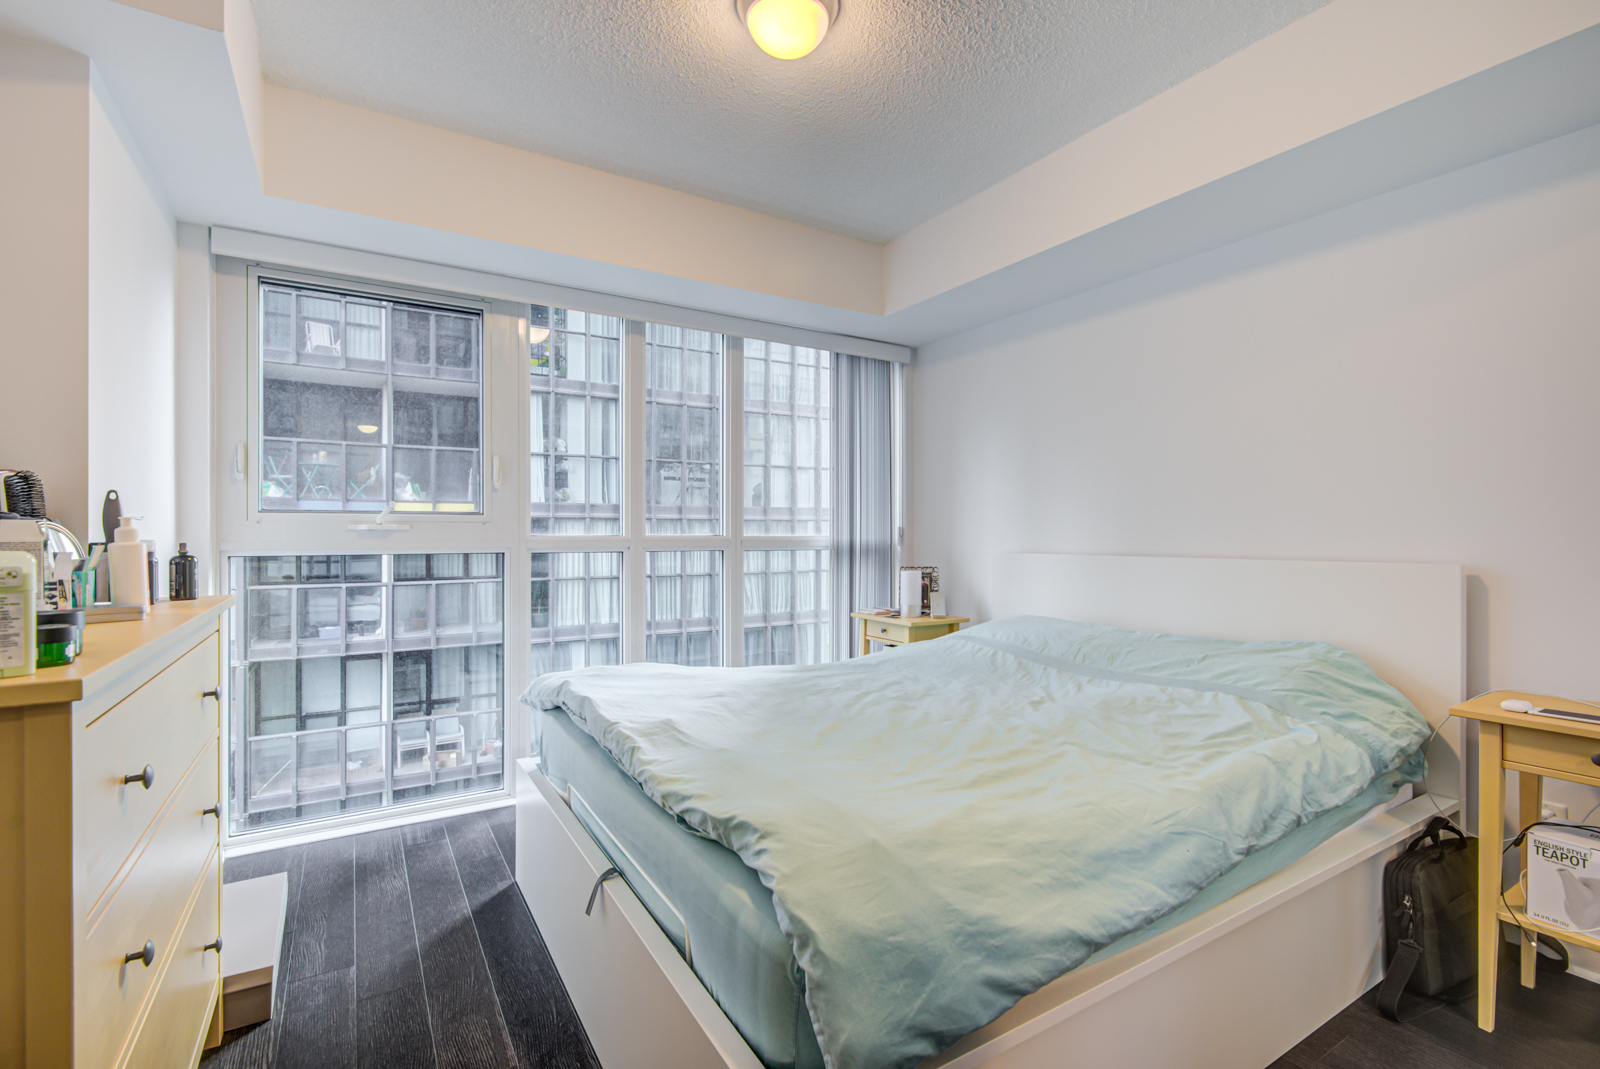 28 Ted Rogers Unit 1702 master bedroom with large bed, floor-to-ceiling windows and gray walls.